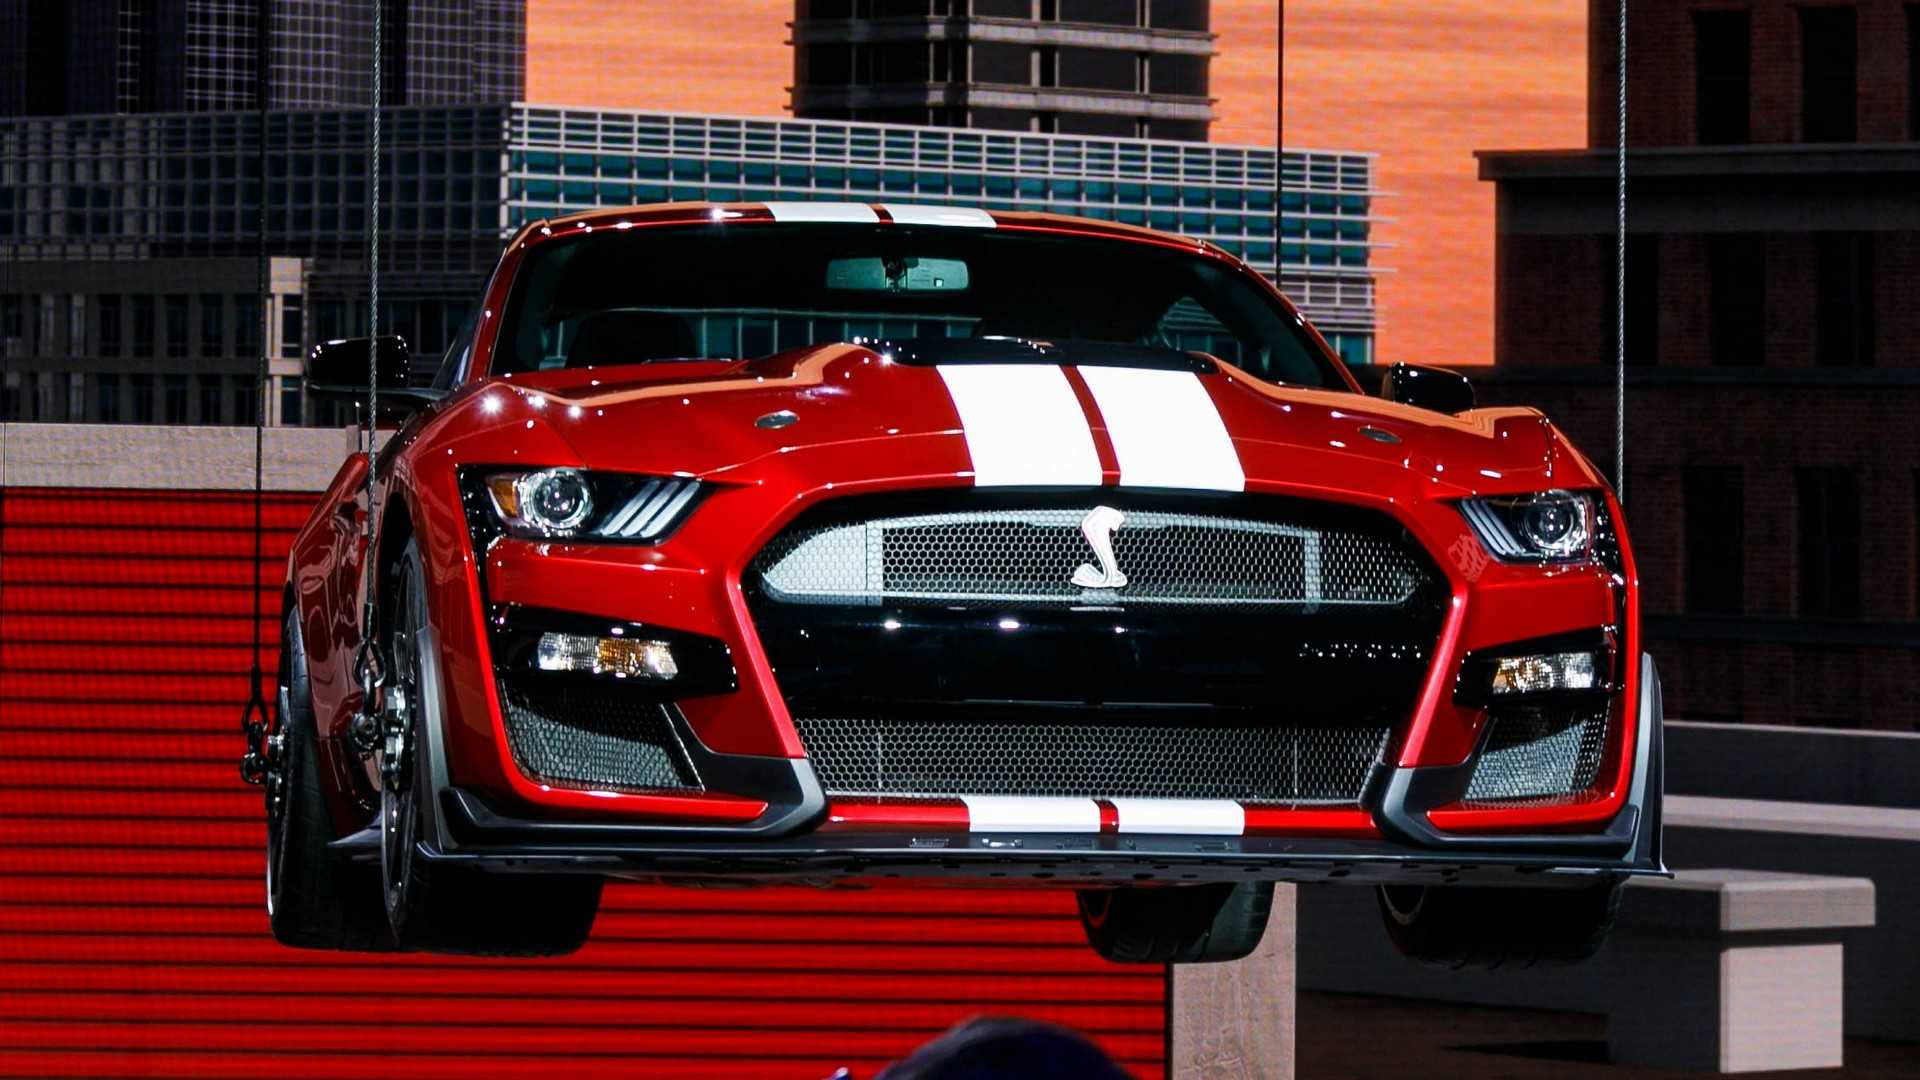 36 New Ford Shelby 2020 Gt500 Review